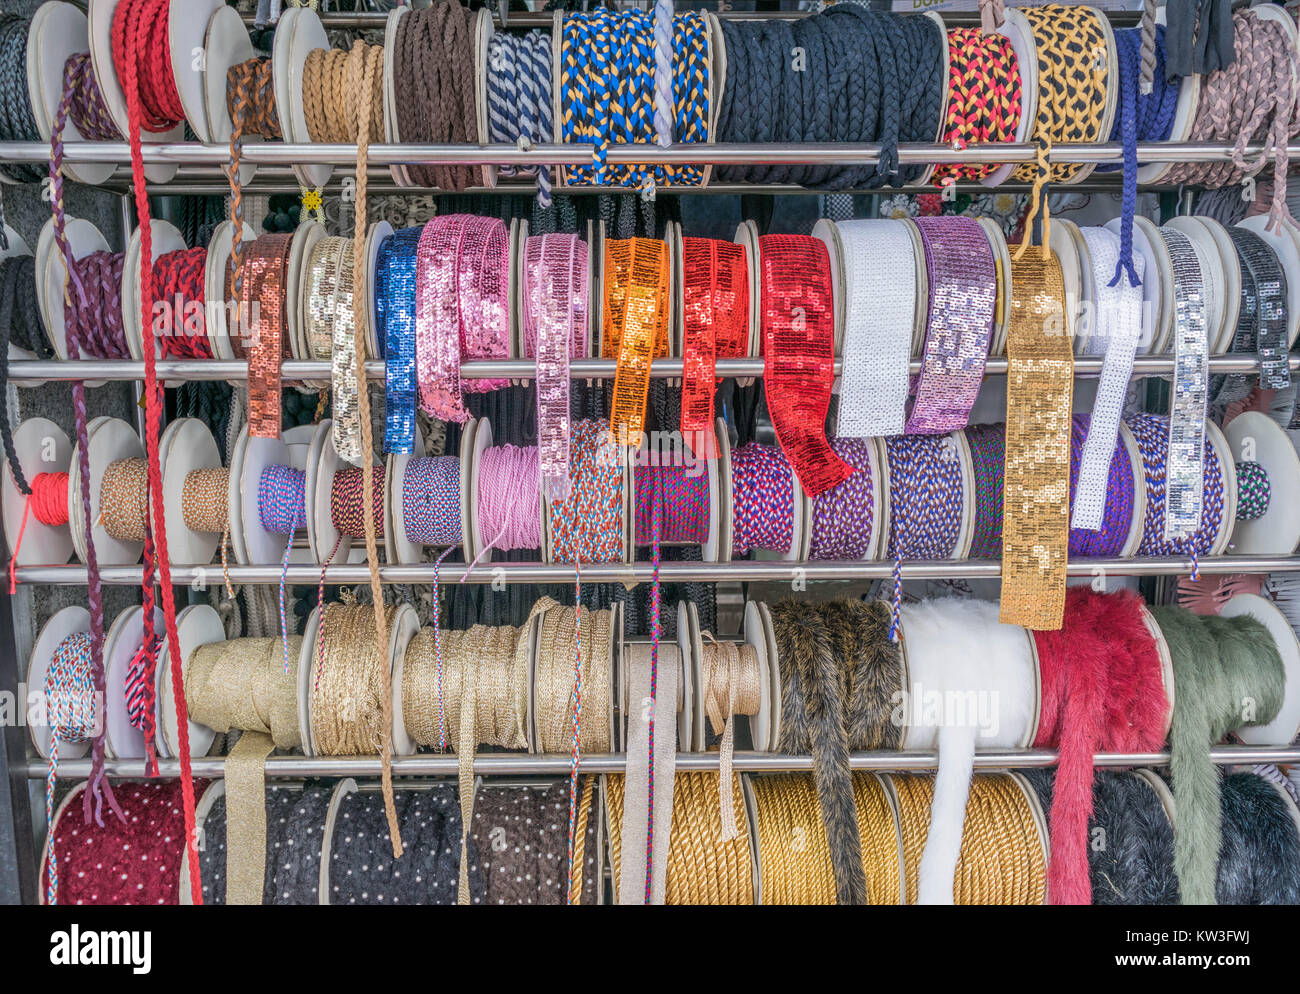 Isolated shot of sequin ribbons, colorful rope and other bric-a-brac, on a display rack - Stock Image